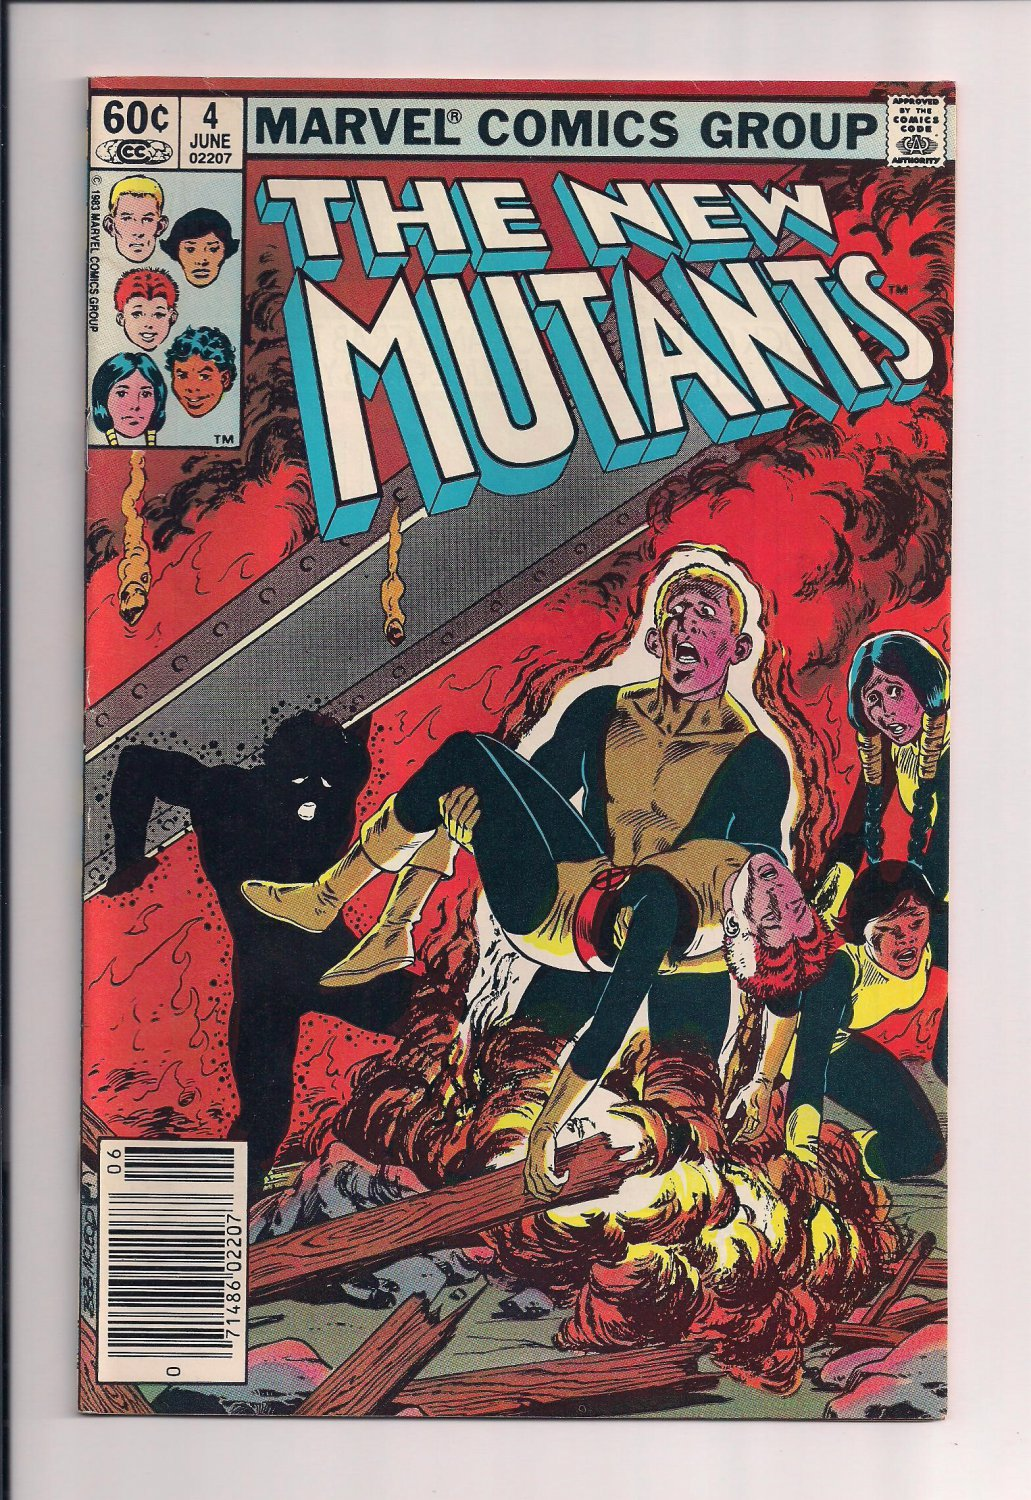 New Mutants #4 (1983) very fine condition or better.  (st7)